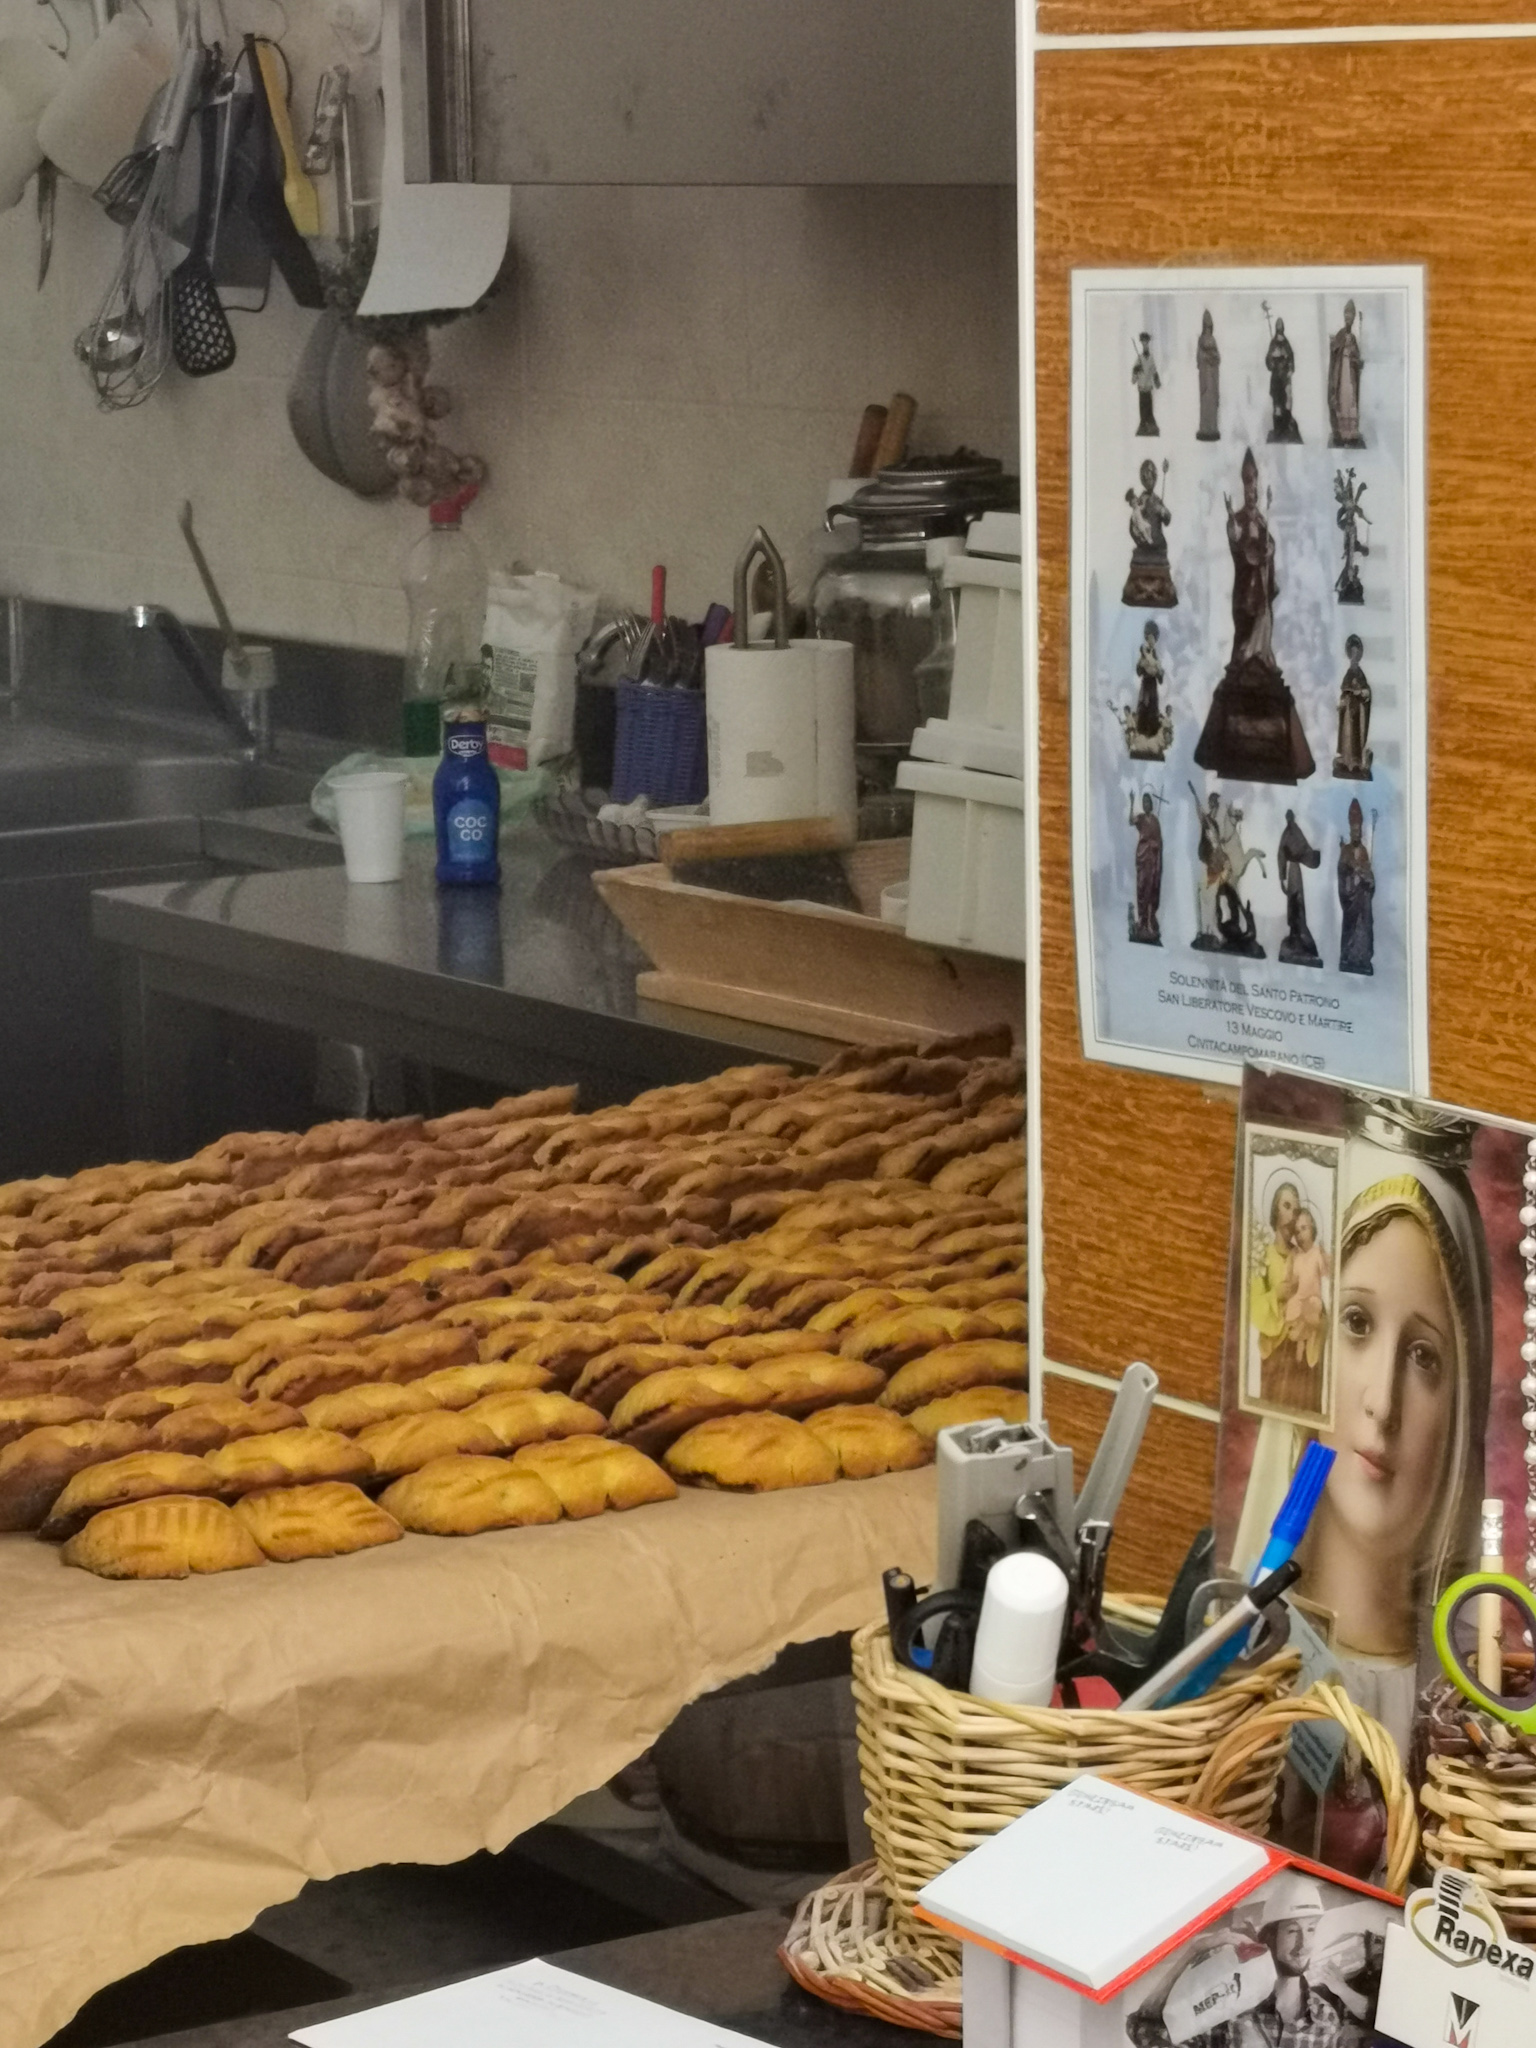 Ciell, the traditional biscuits of Civitacampomarano, in the region of Molise